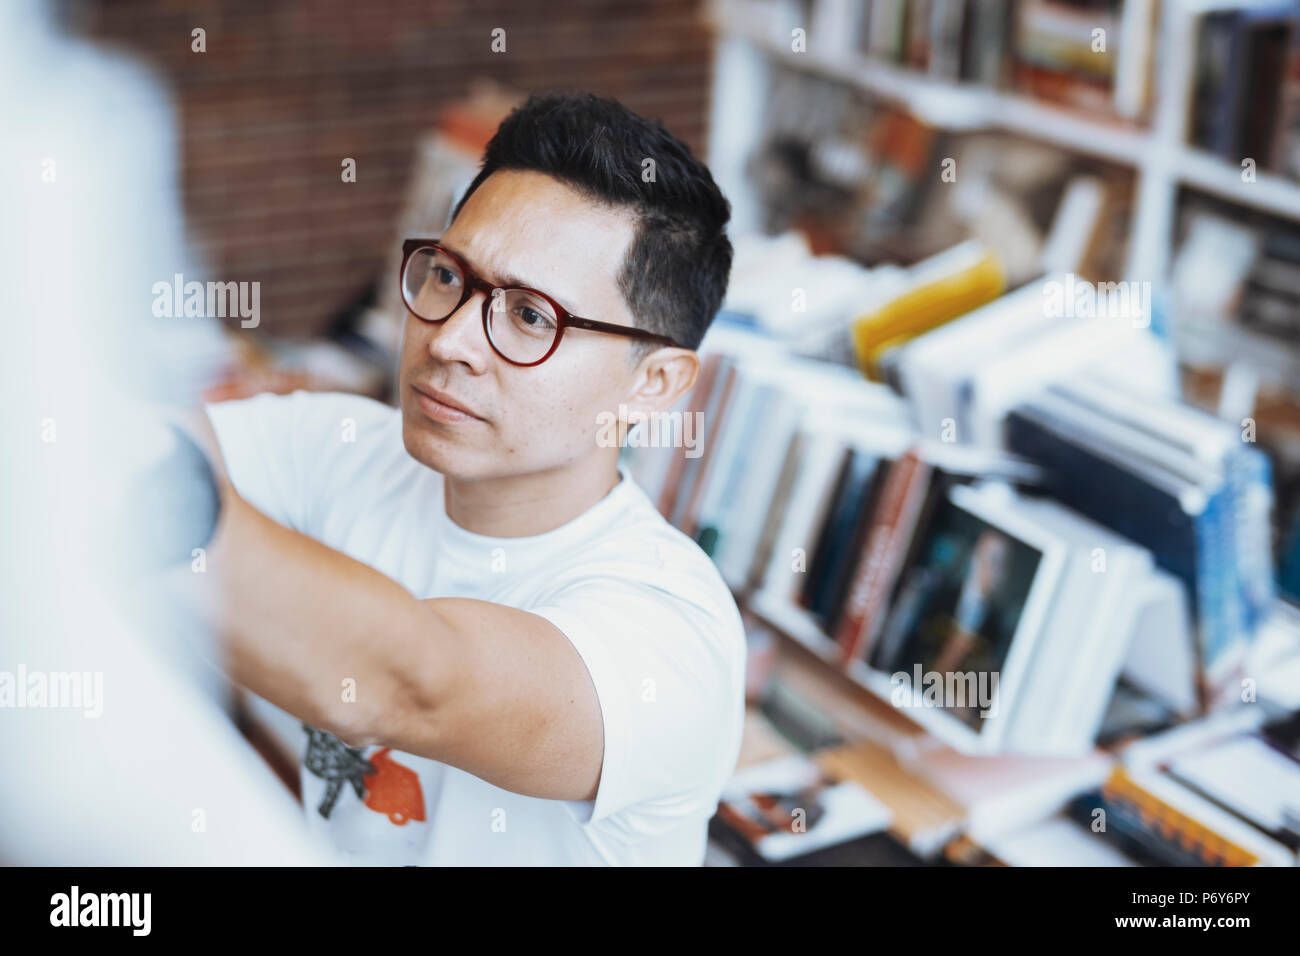 Young atrractive spectacled man drawing hand to book on a book shelf. - Stock Image